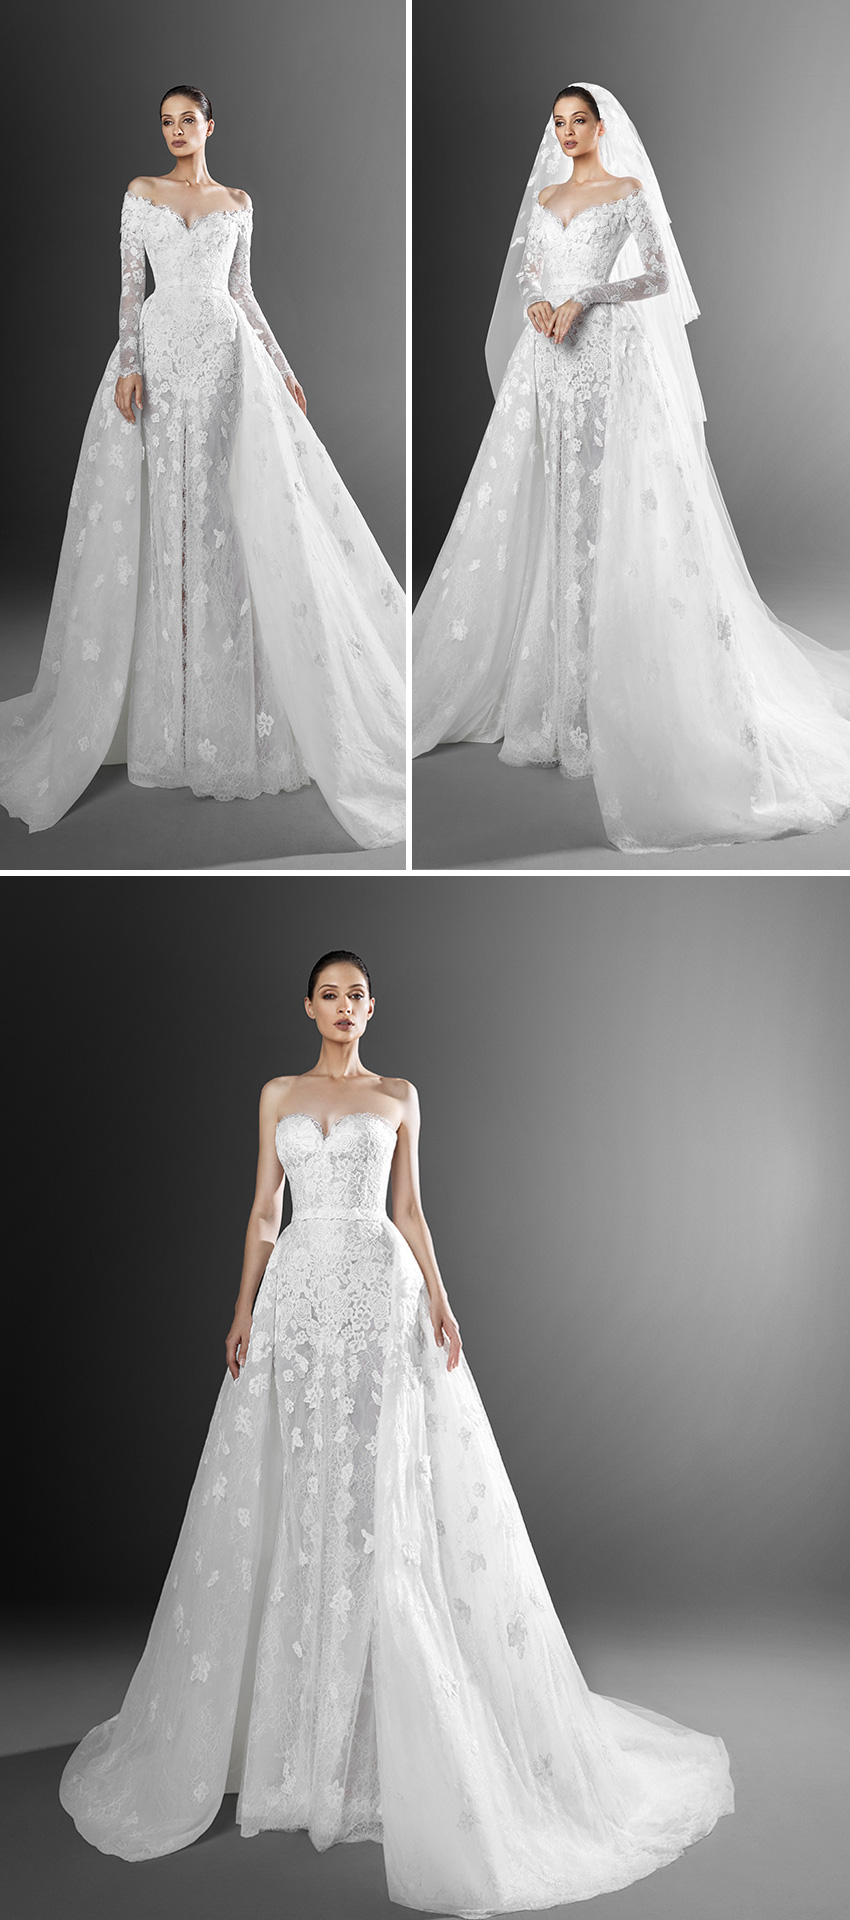 Zuhair Murad Spring 2021 bridal collection includes voluminous over skirts featured in Perfect Wedding Magazine